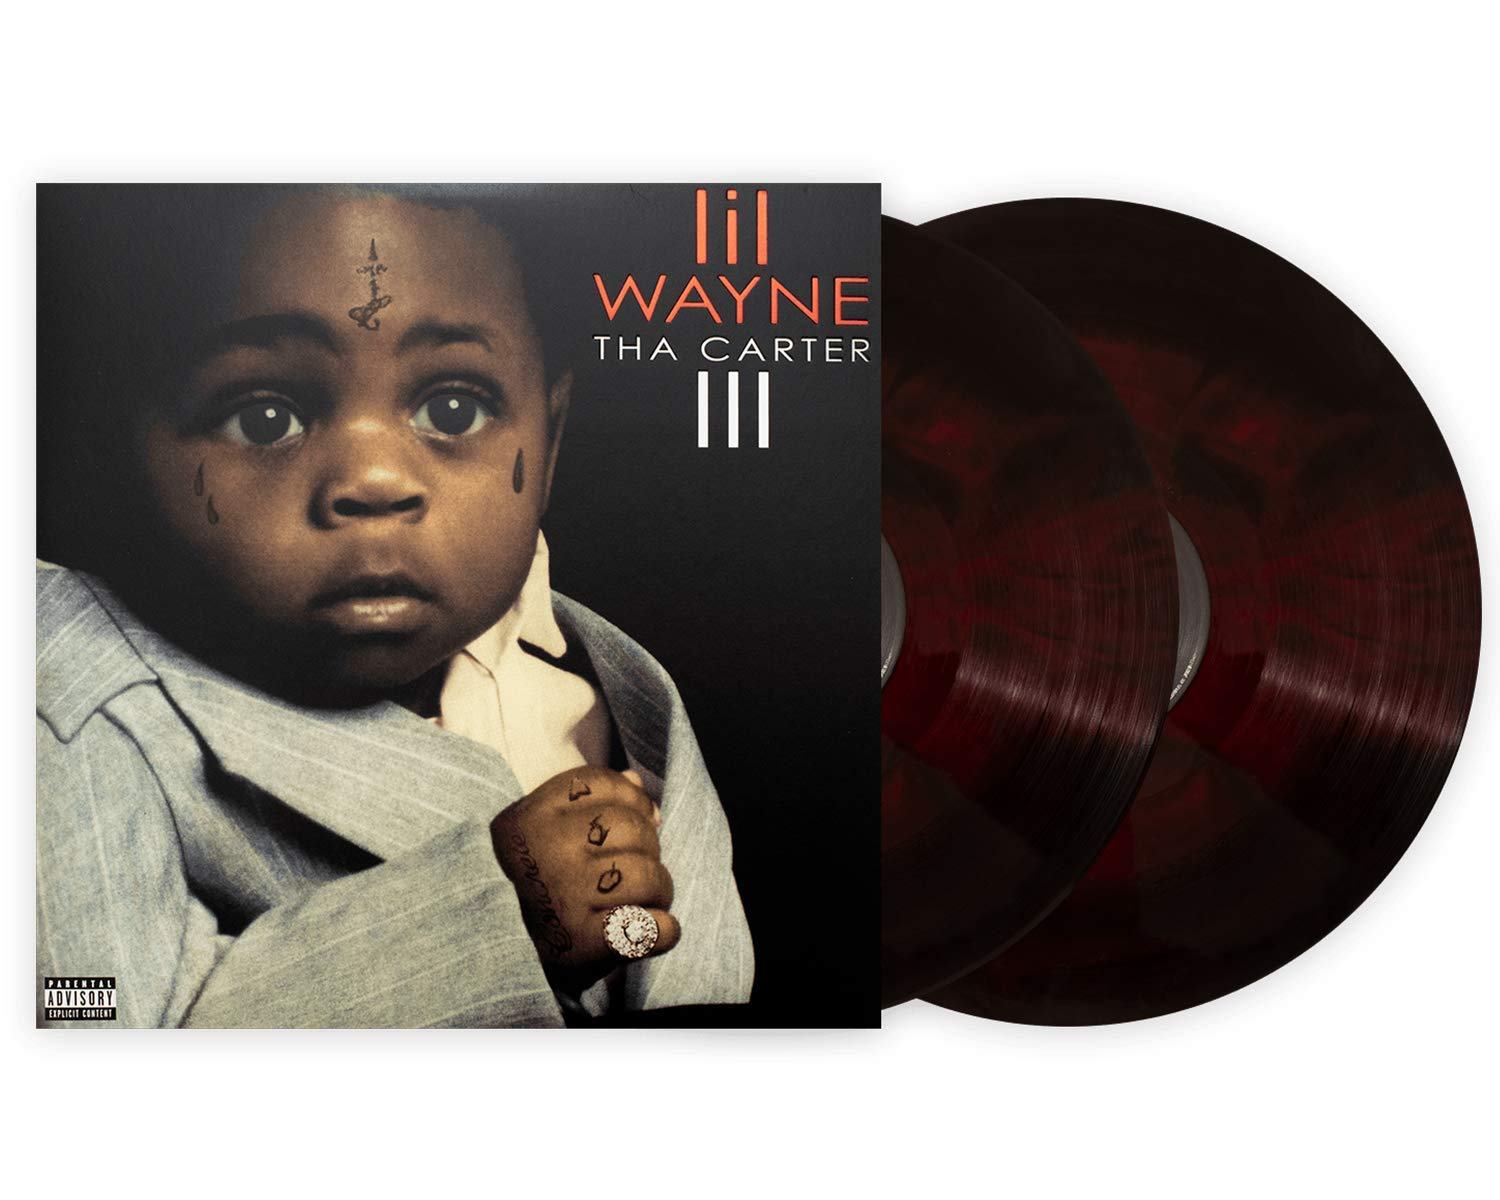 Lil Wayne - Tha Carter III Deluxe Club Edition Vinyl 180 gram Red and Black Galaxy 2X Vinyl LP by Cash Money Records